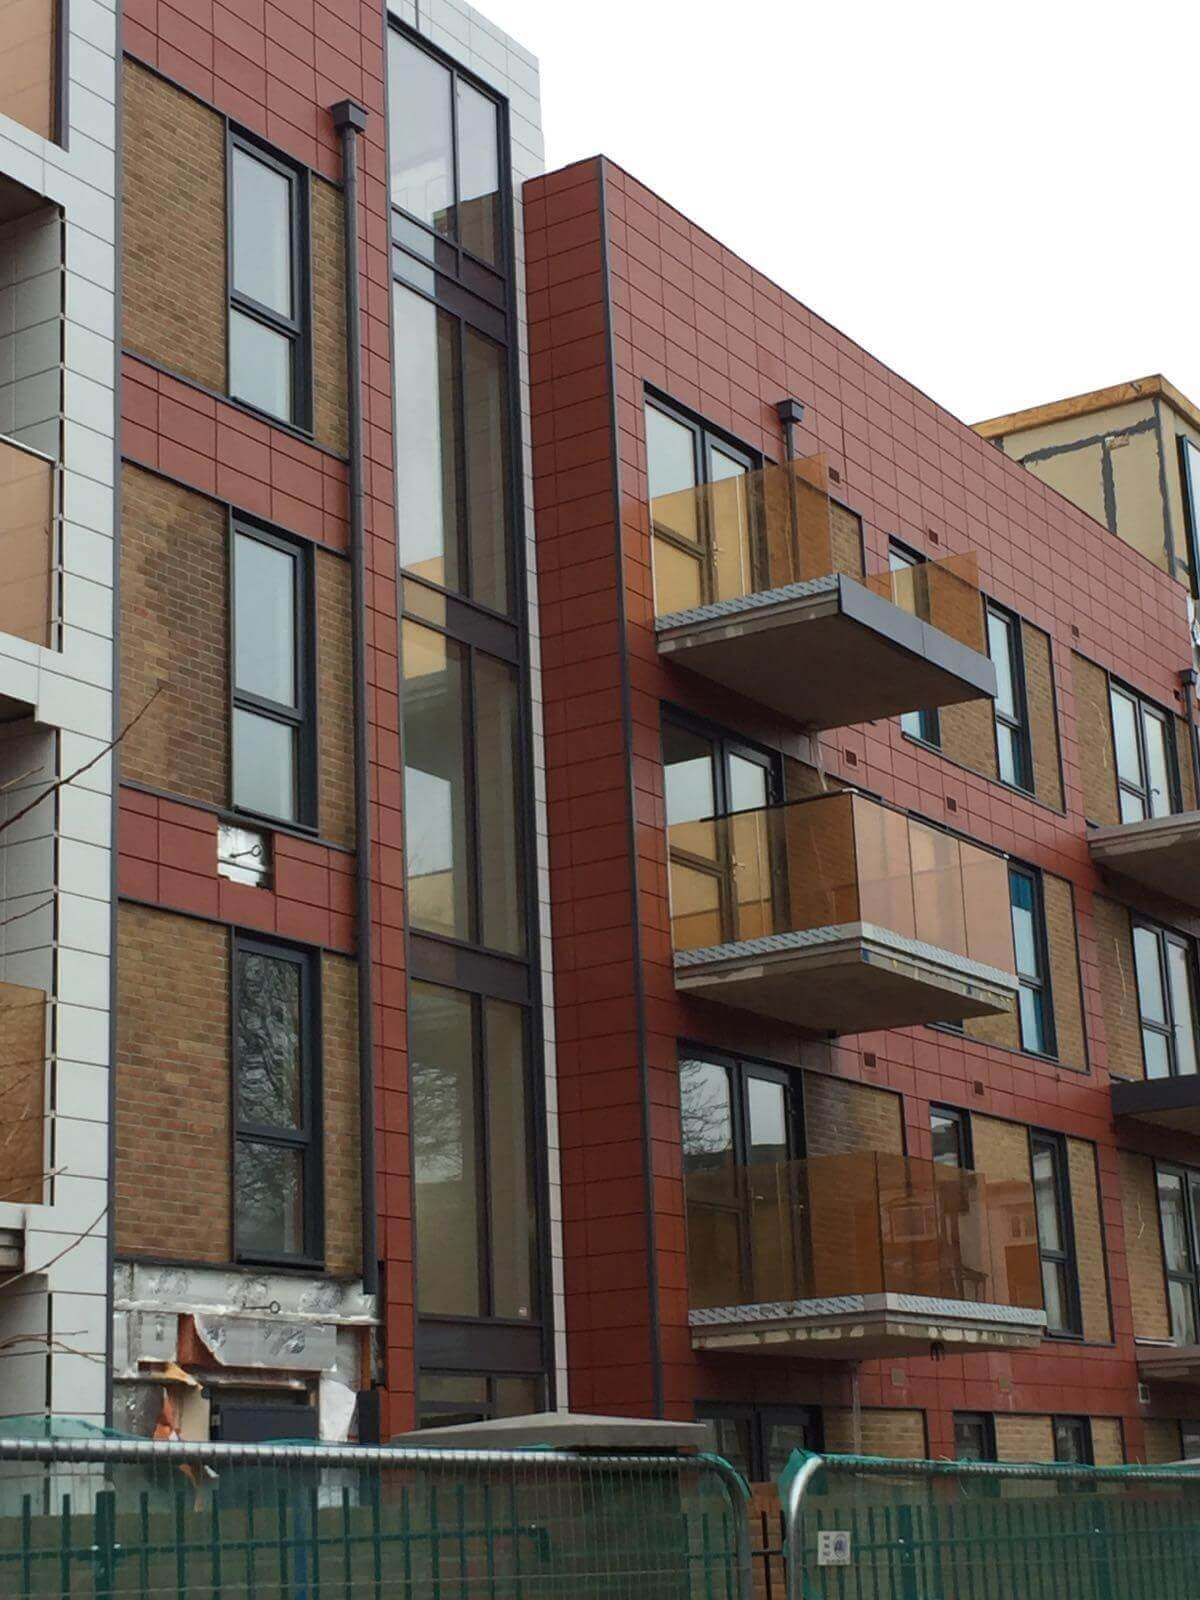 Cladding Panel Paint Colour Change London